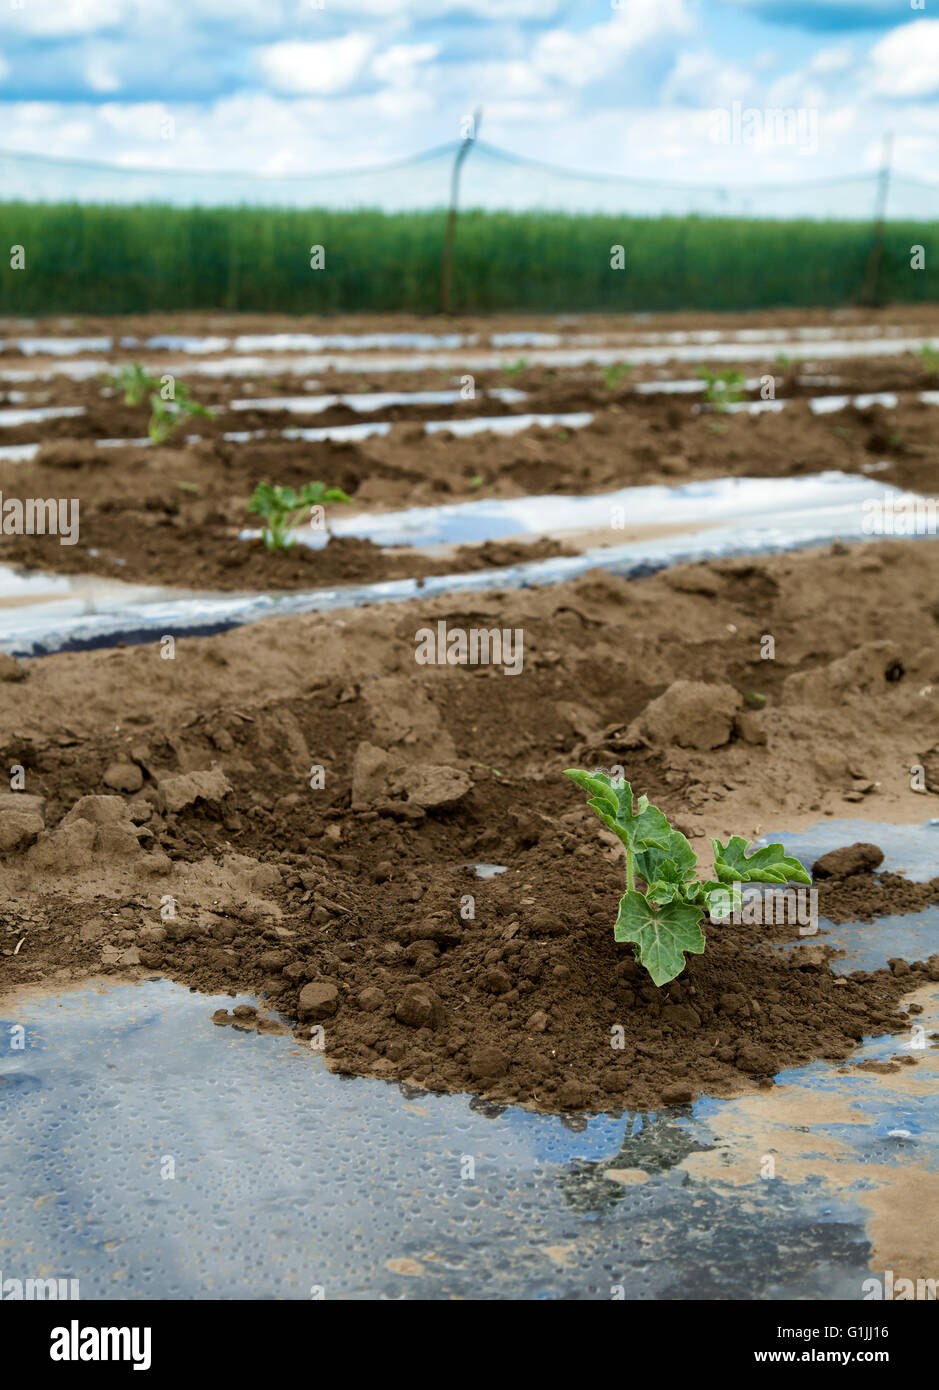 Watermelon plant maturing on plastic foil at field - Stock Image